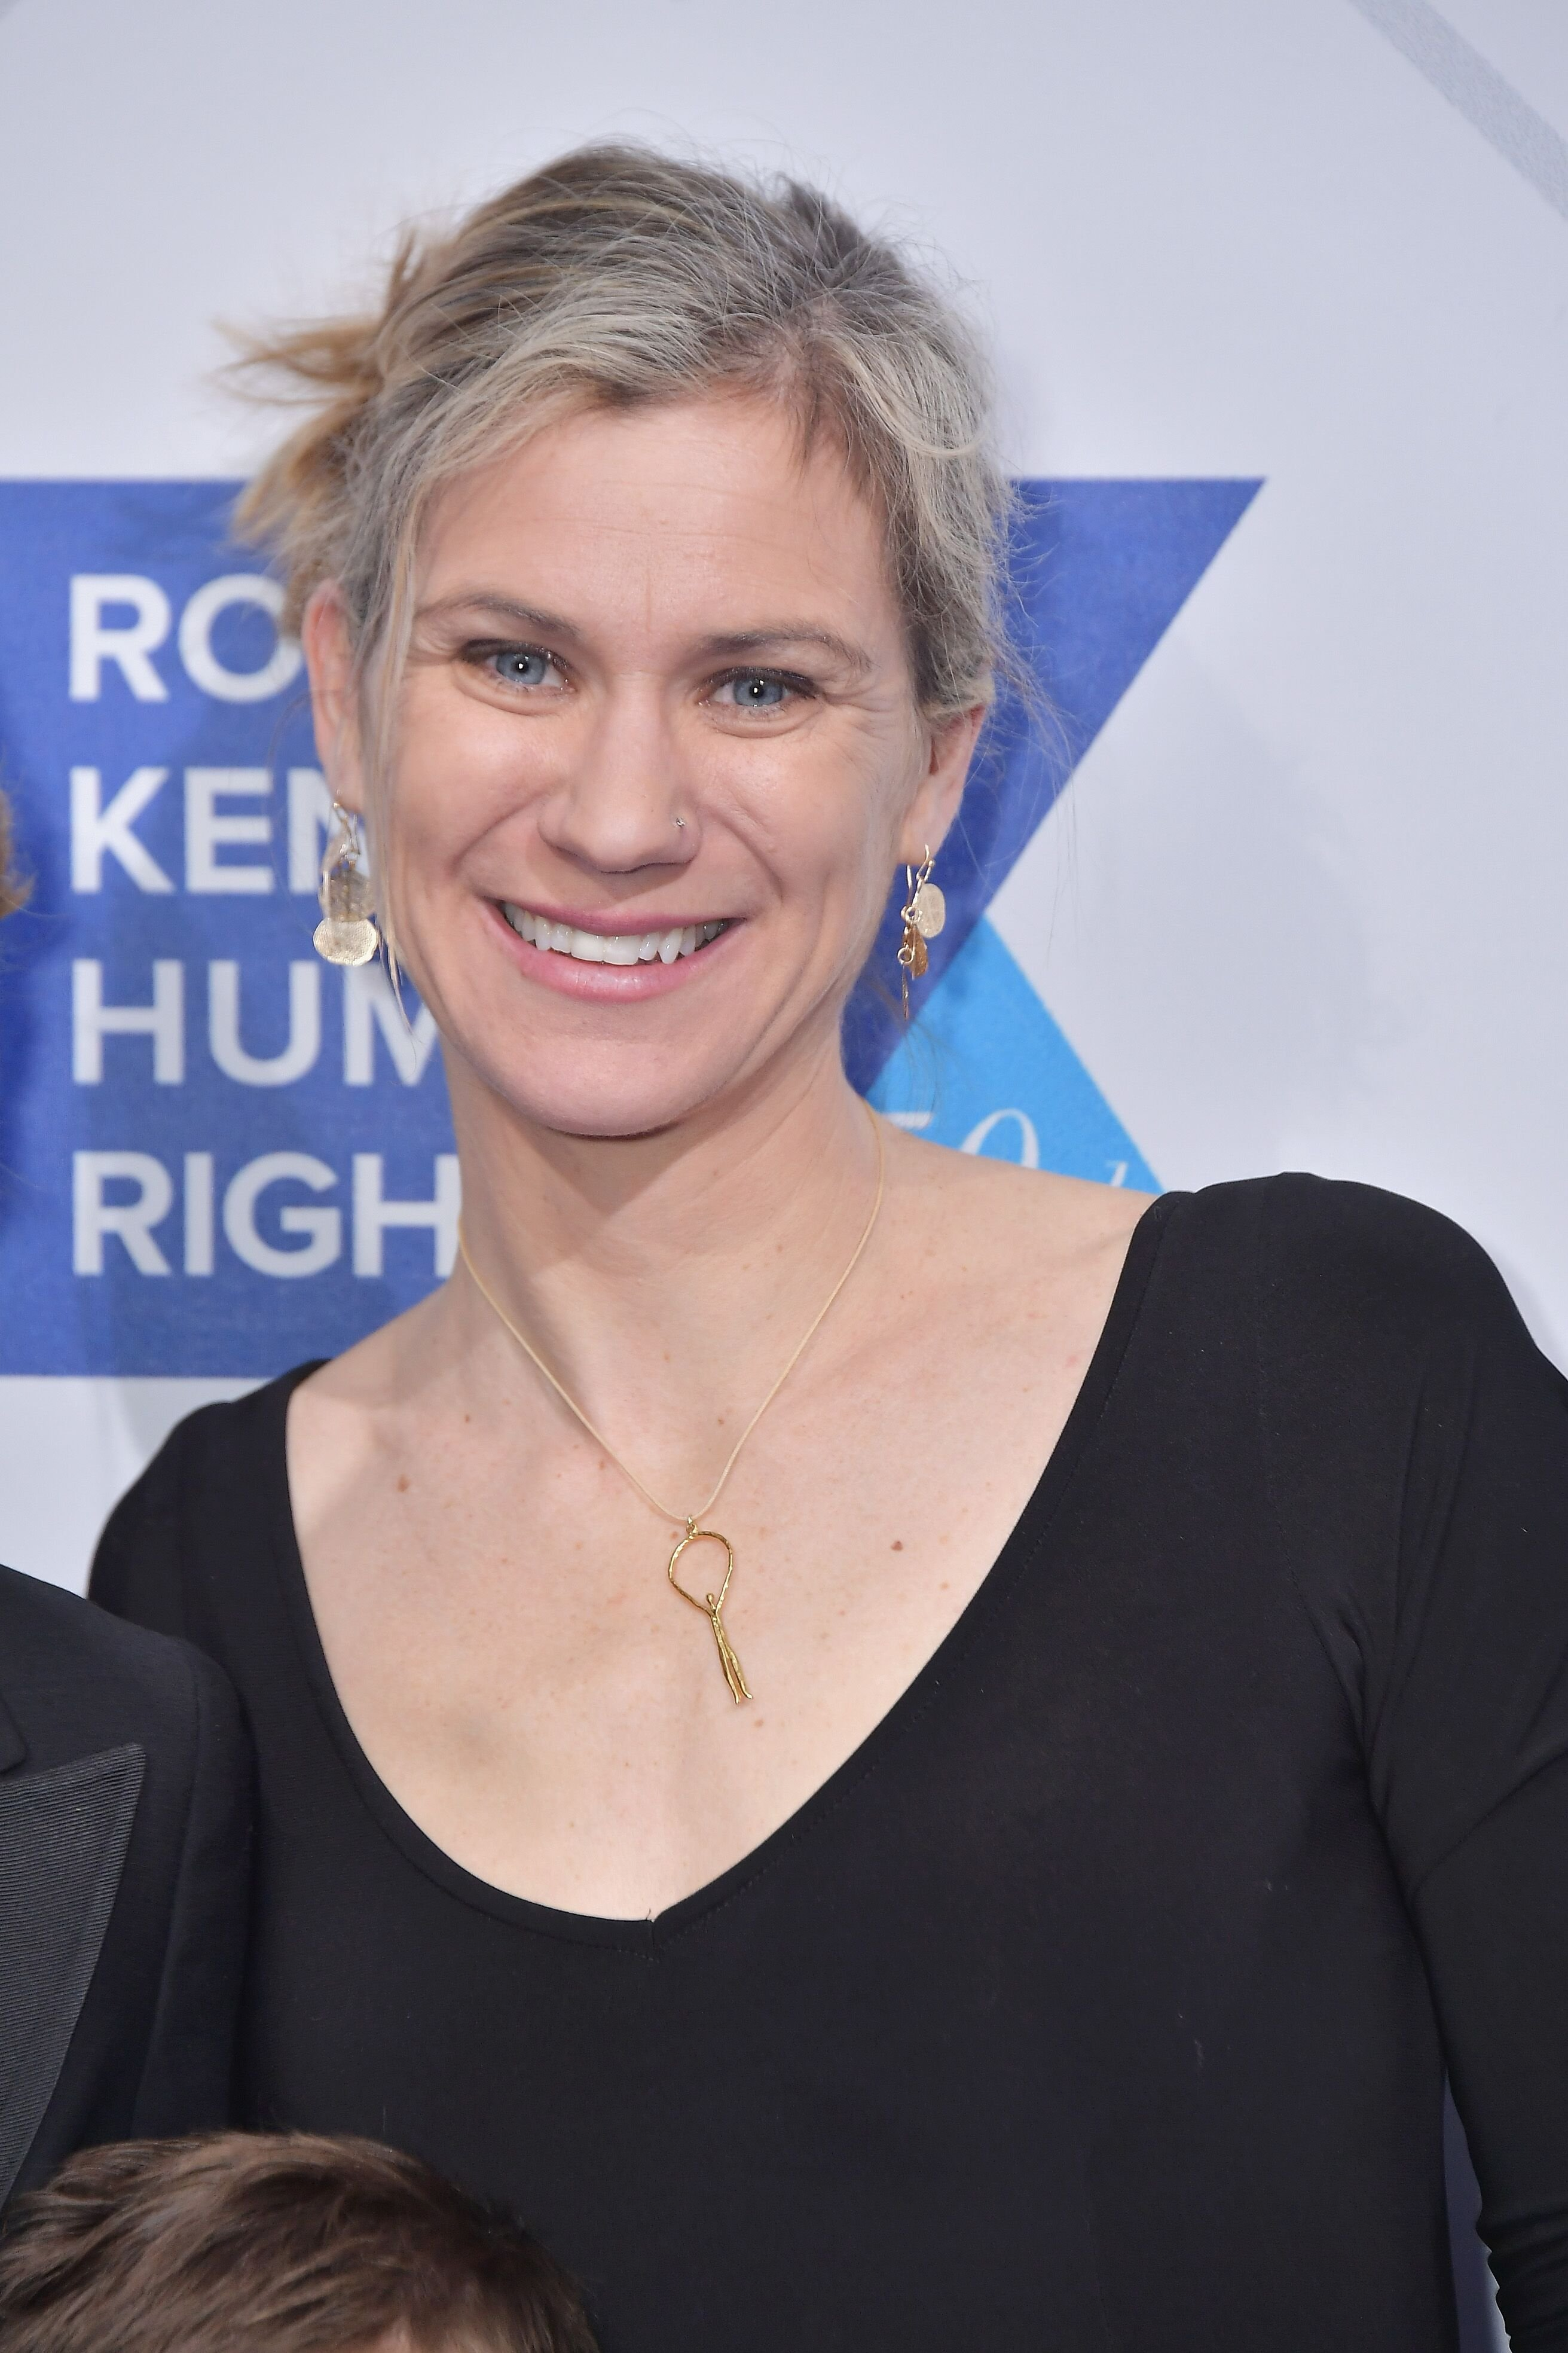 Maeve McKean at the Robert F. Kennedy Human Rights Ripple Of Hope Awards on December 12, 2018, in New York City | Photo: Michael Loccisano/Getty Images